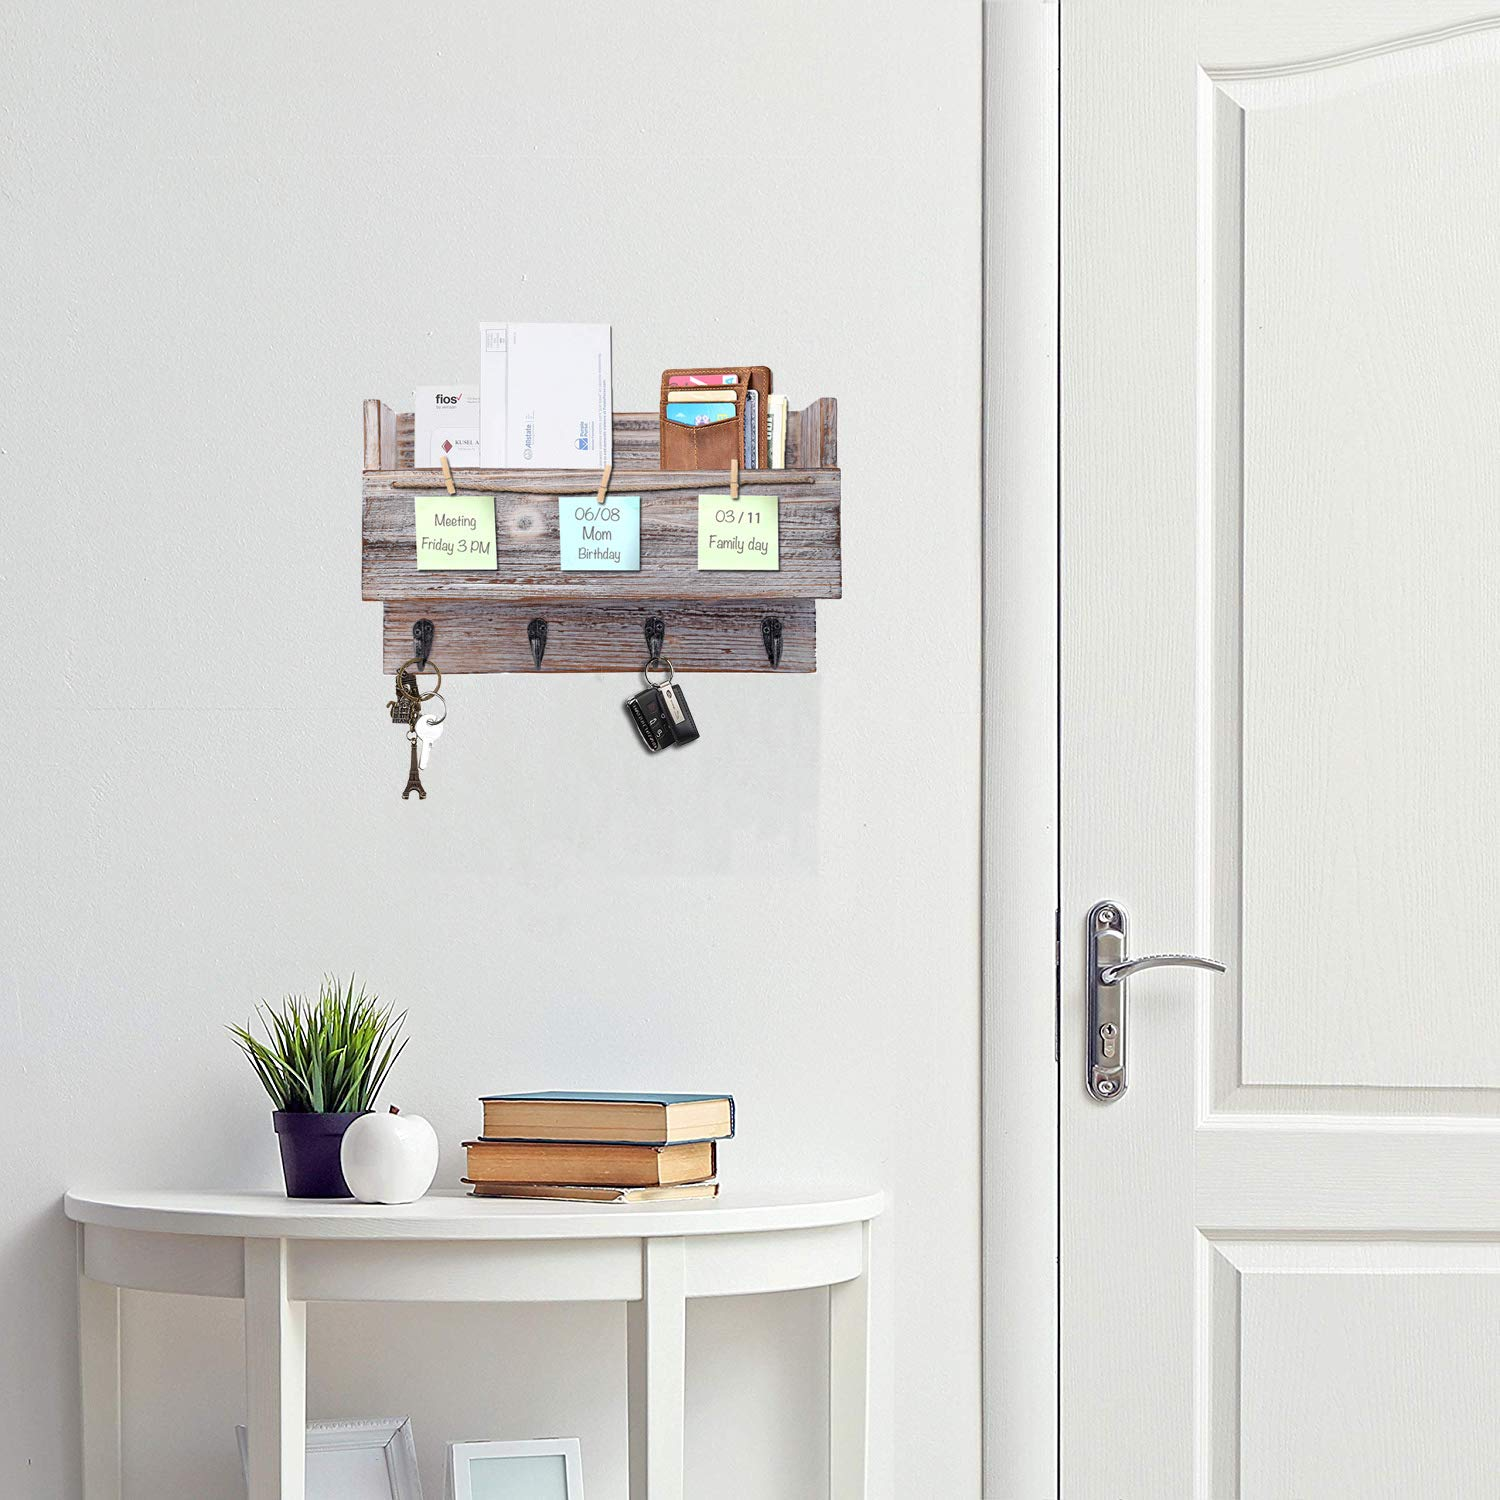 Kakivan Wood Wall Mounted 4 Key Holder Hooks with Memo Clips Entryway Organizer for Letter Mail Holder White Floating Shelves Storage for Coat Rack Magazine Holder and More.